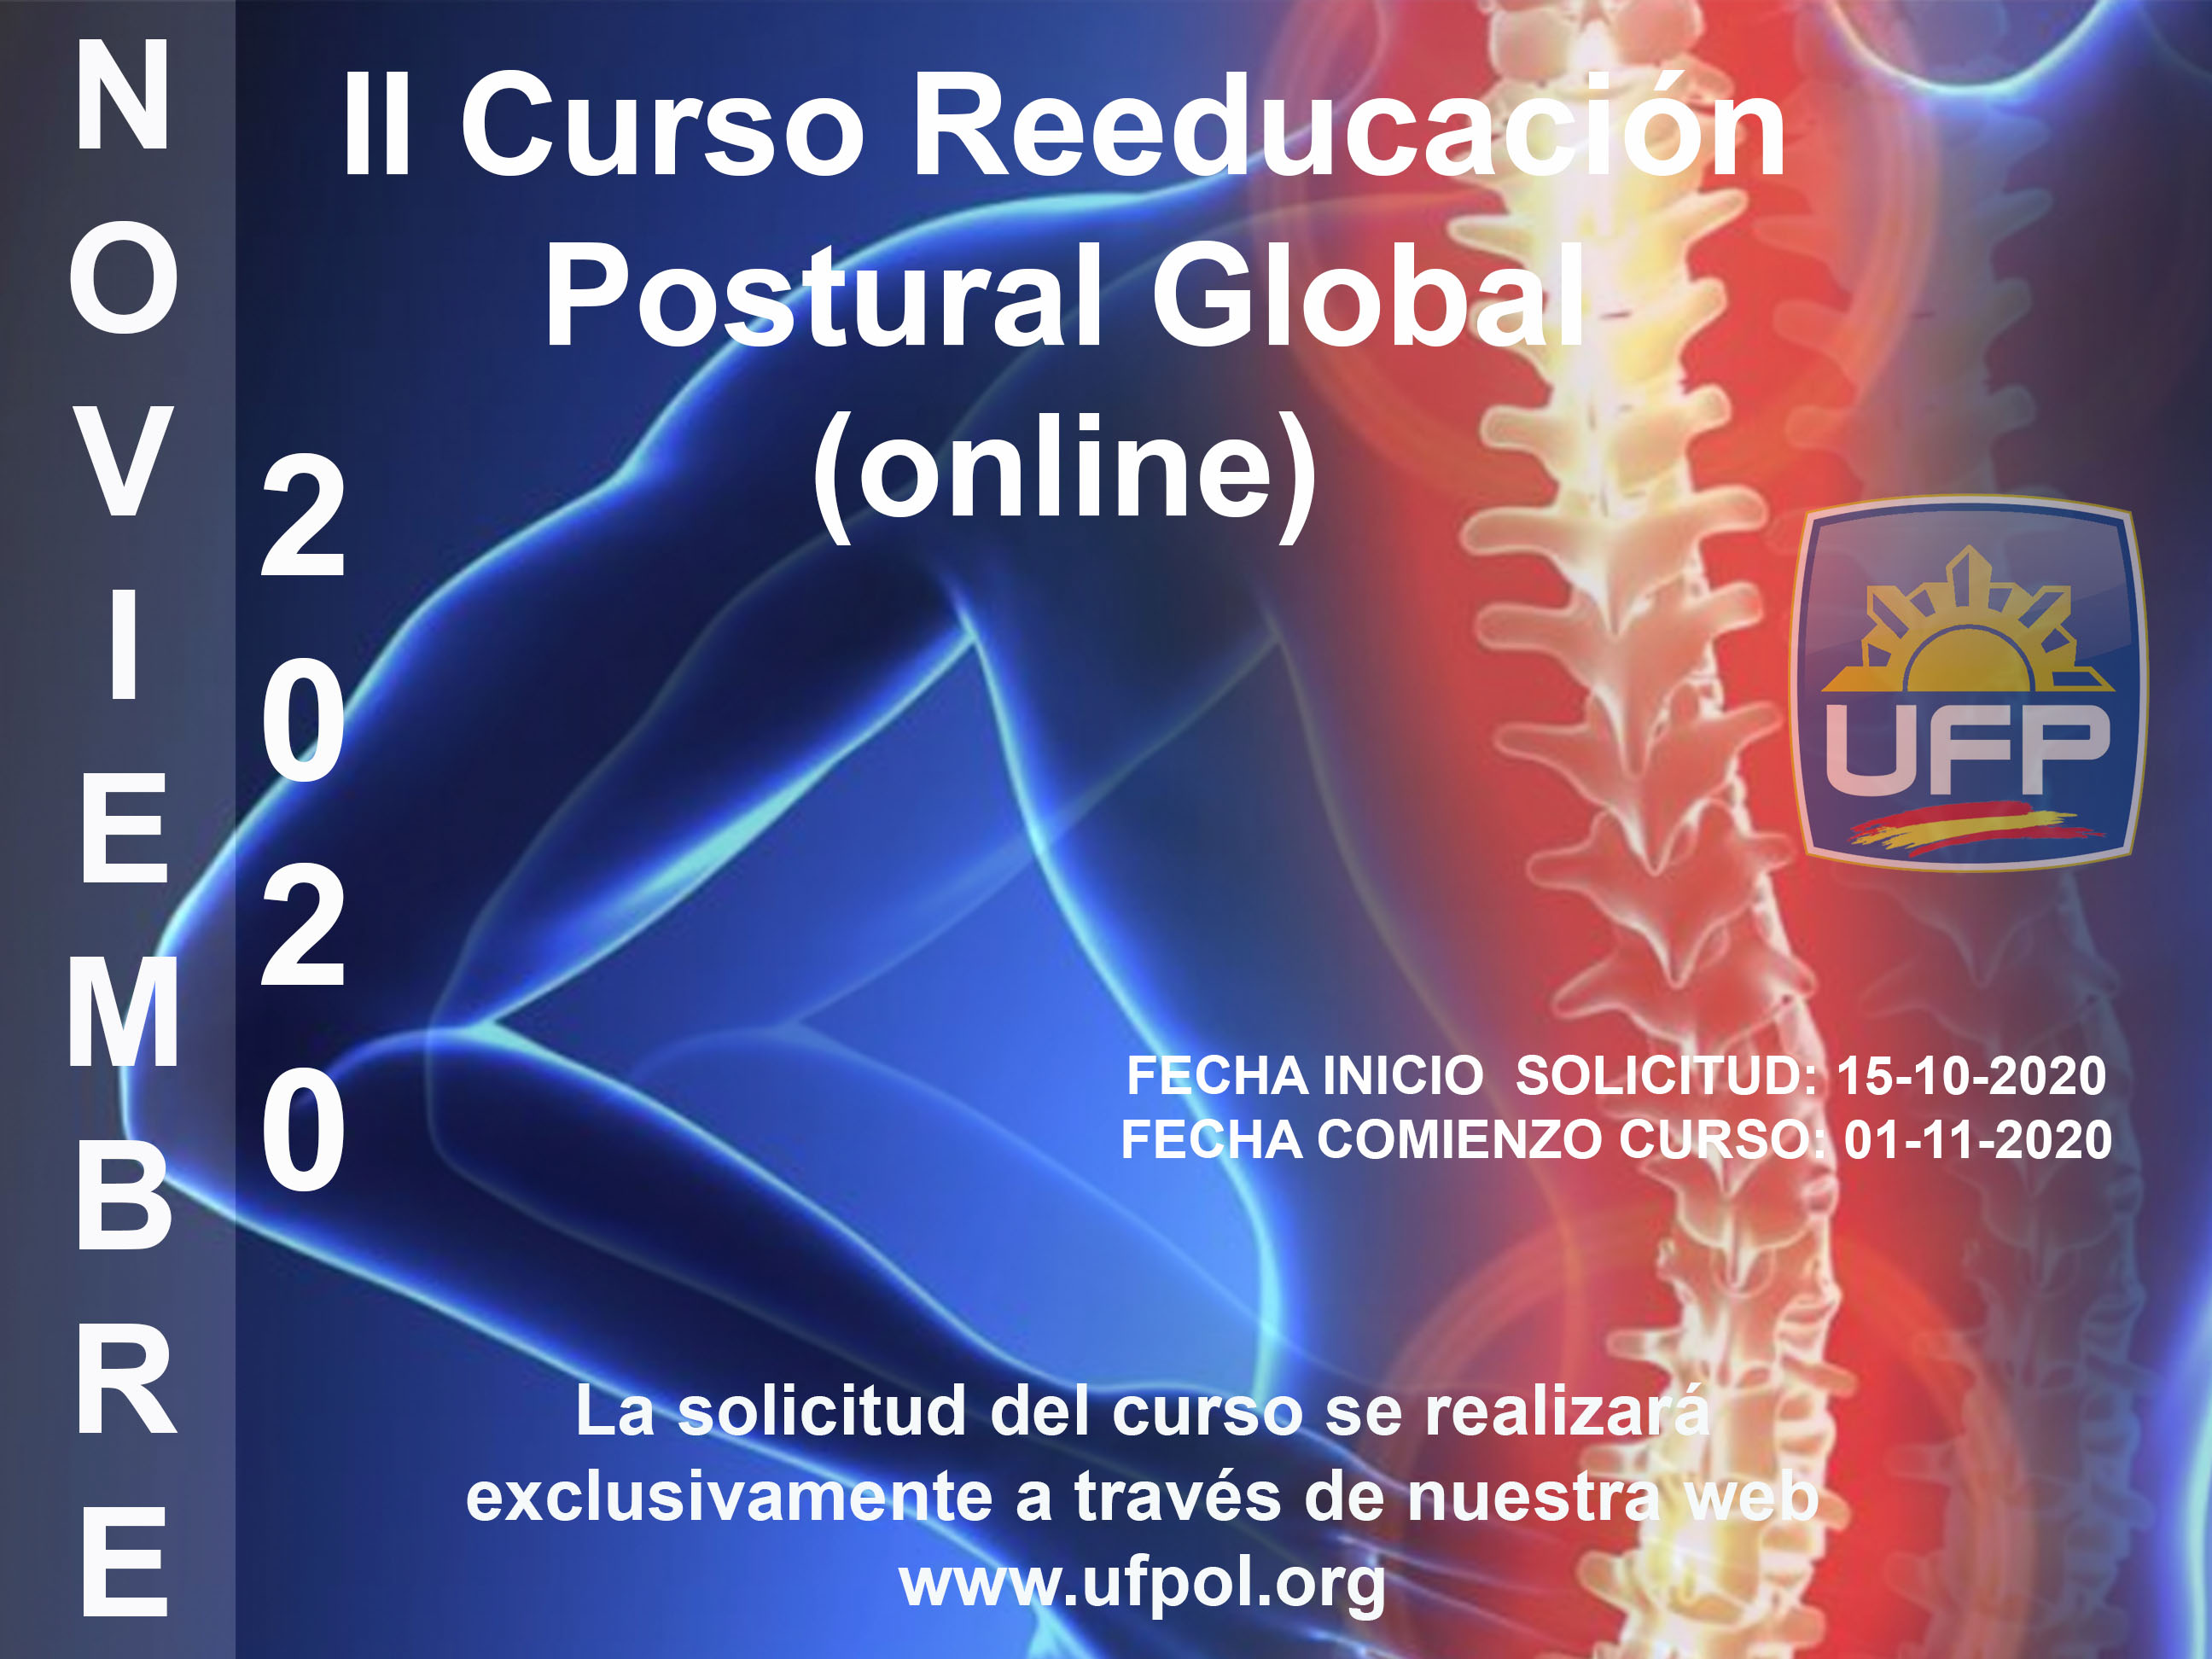 Reeducacion%20Postural%20Global_WEB.jpg